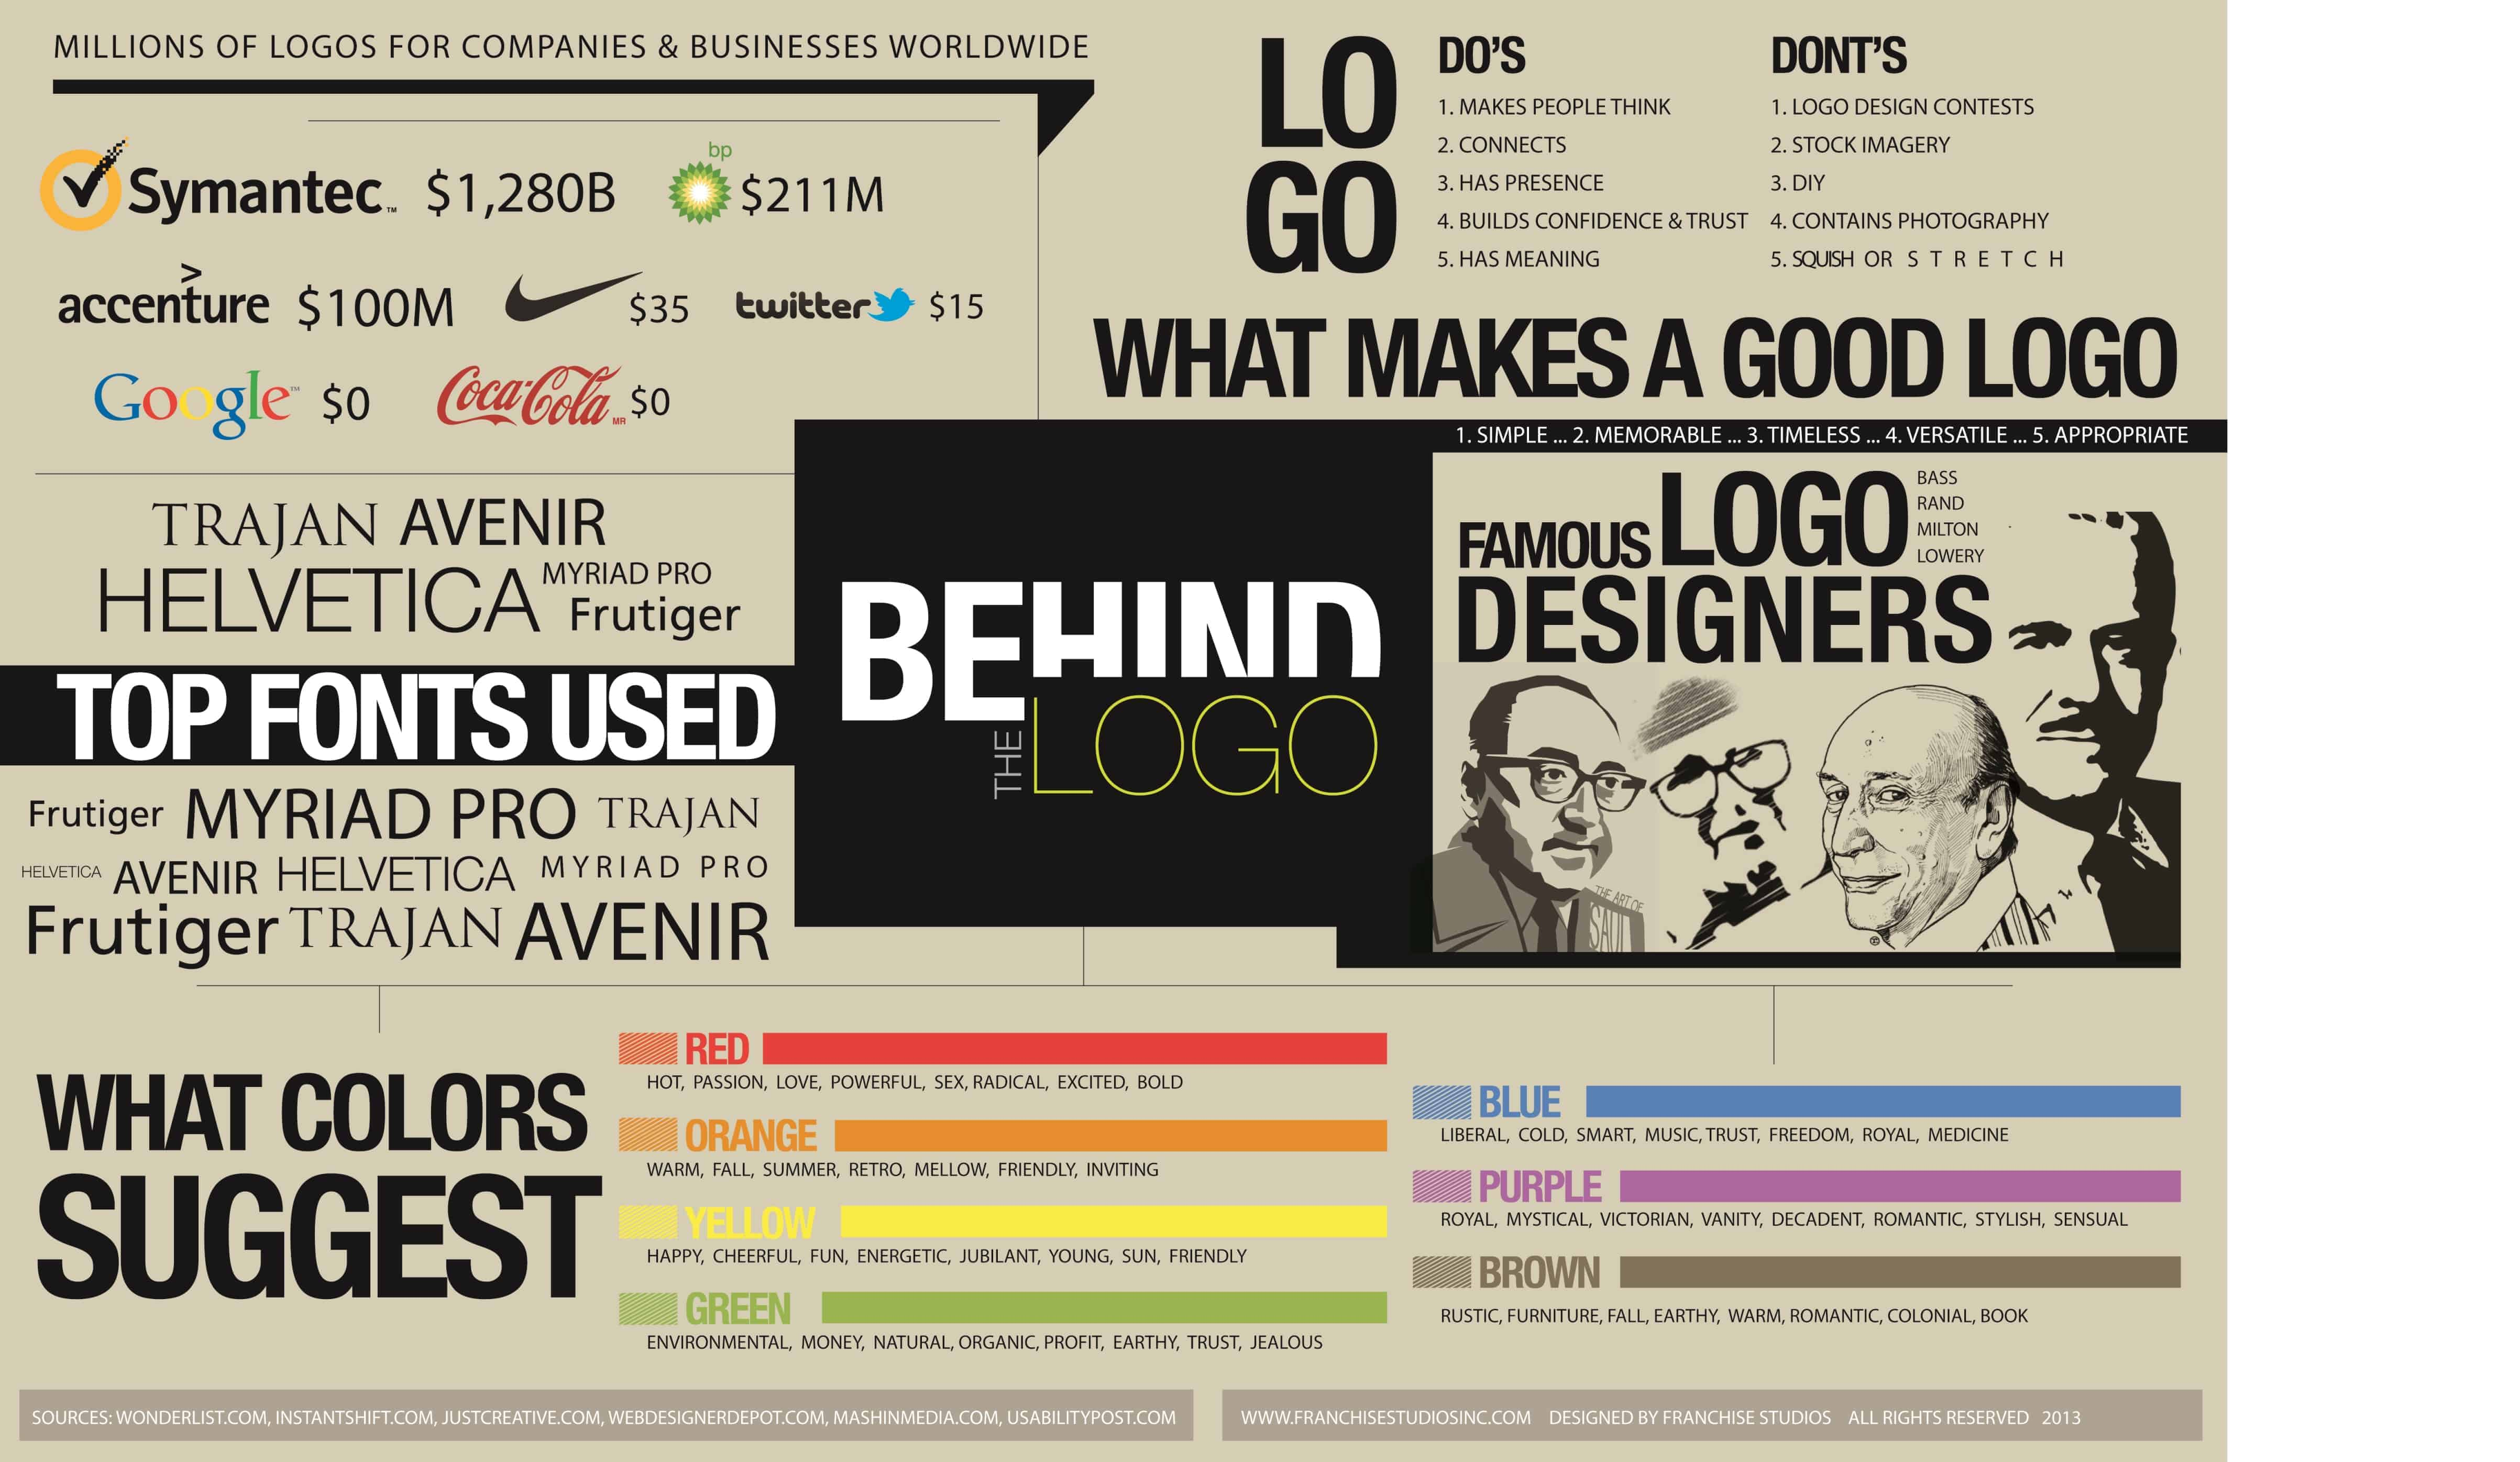 Behind The Logo [infographic]